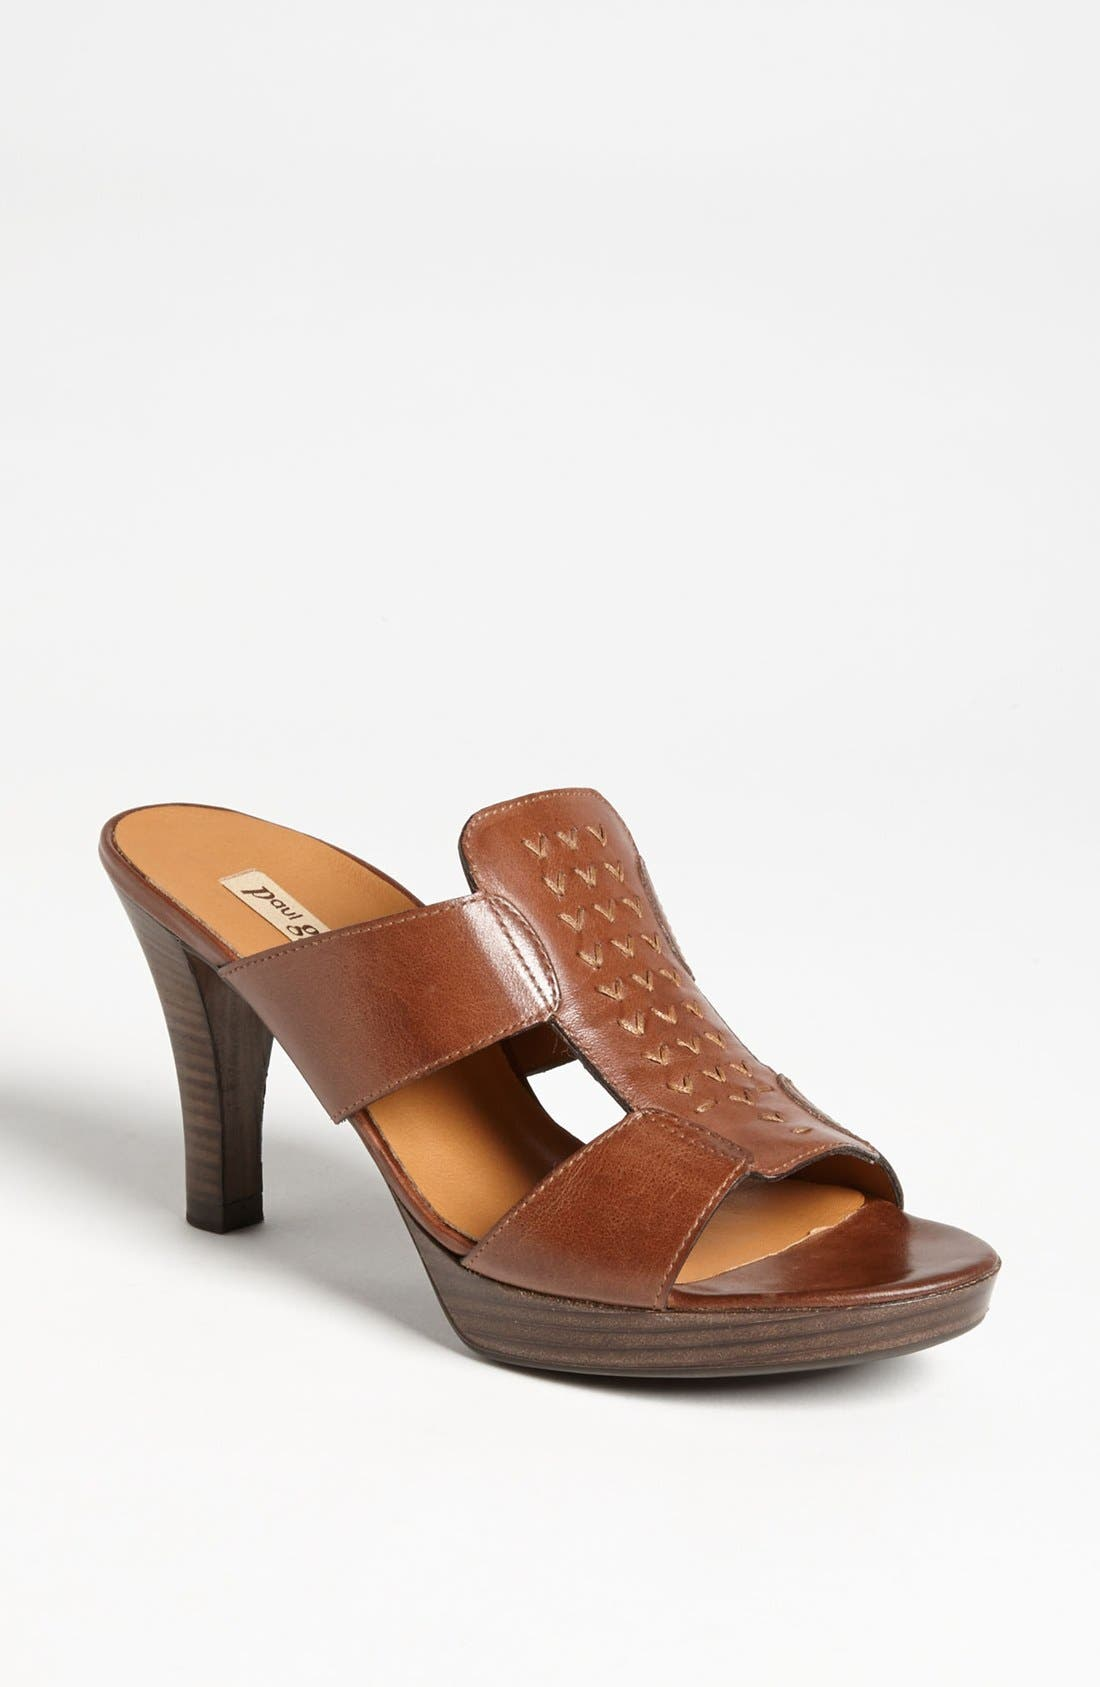 Main Image - Paul Green 'Perla' Sandal